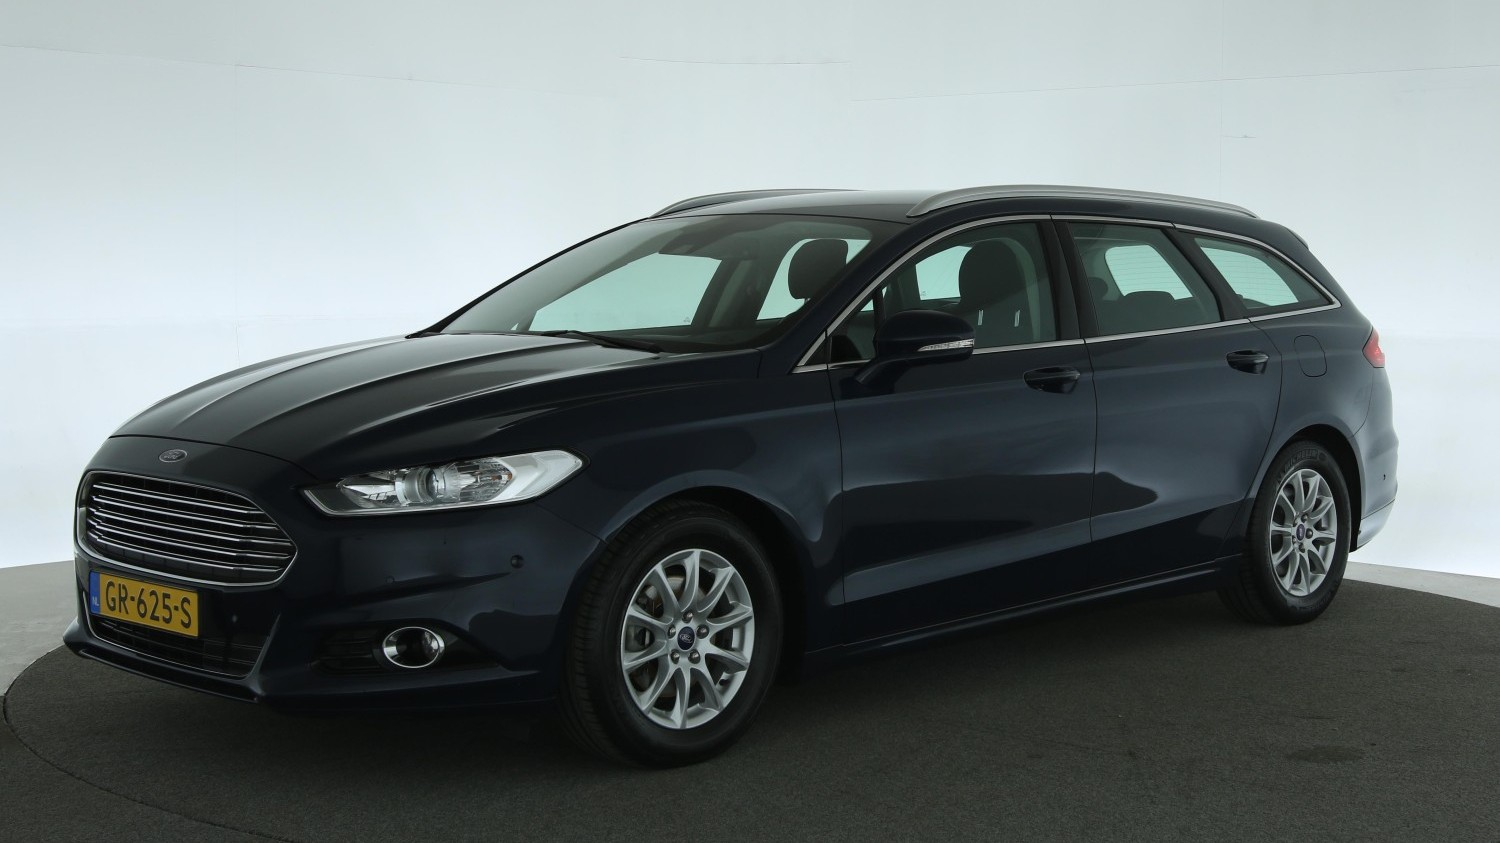 Ford Mondeo Station 2015 GR-625-S 1